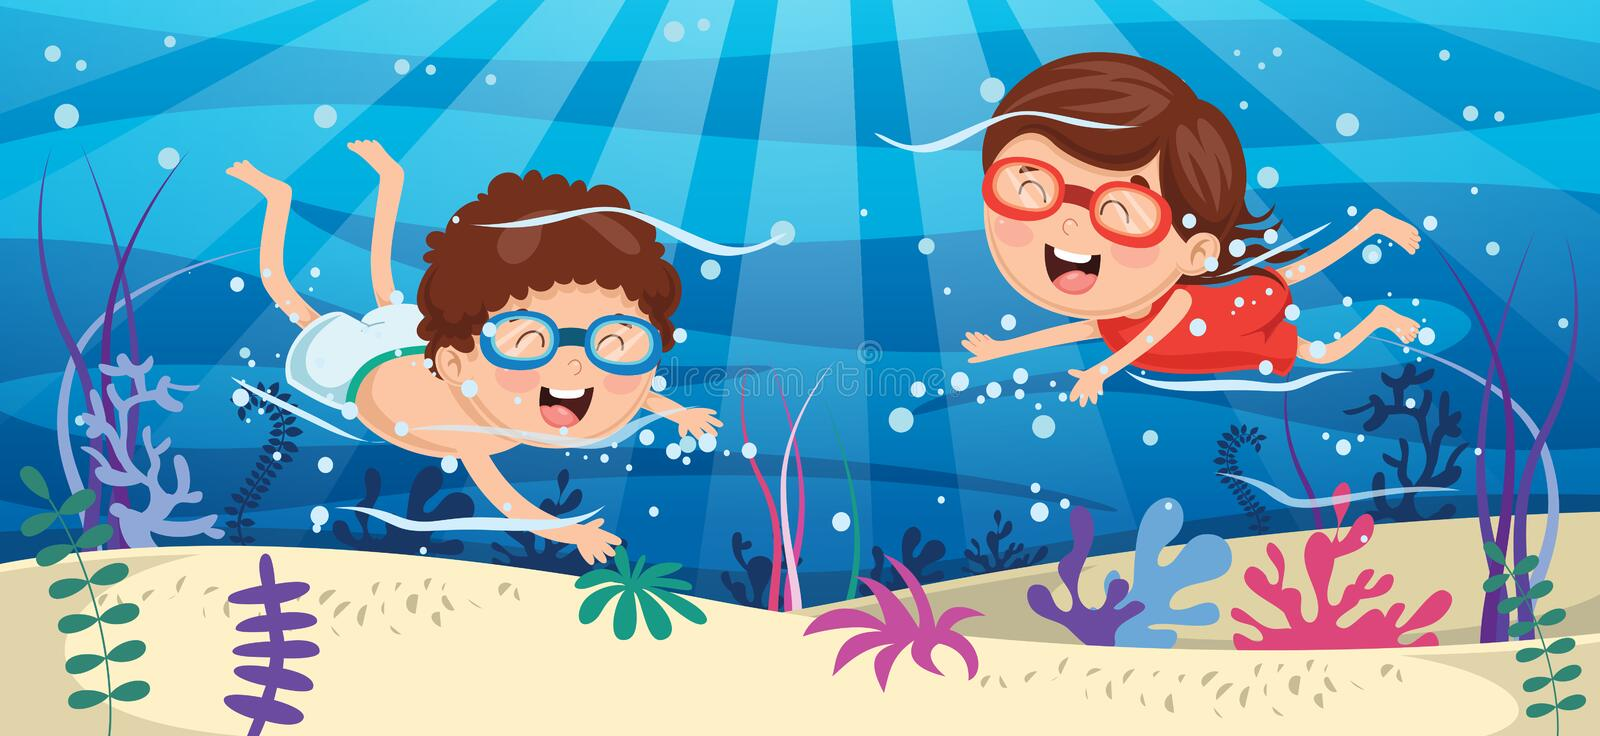 Vector Illustration Of Kids Swimming Underwater. Eps 10 royalty free illustration